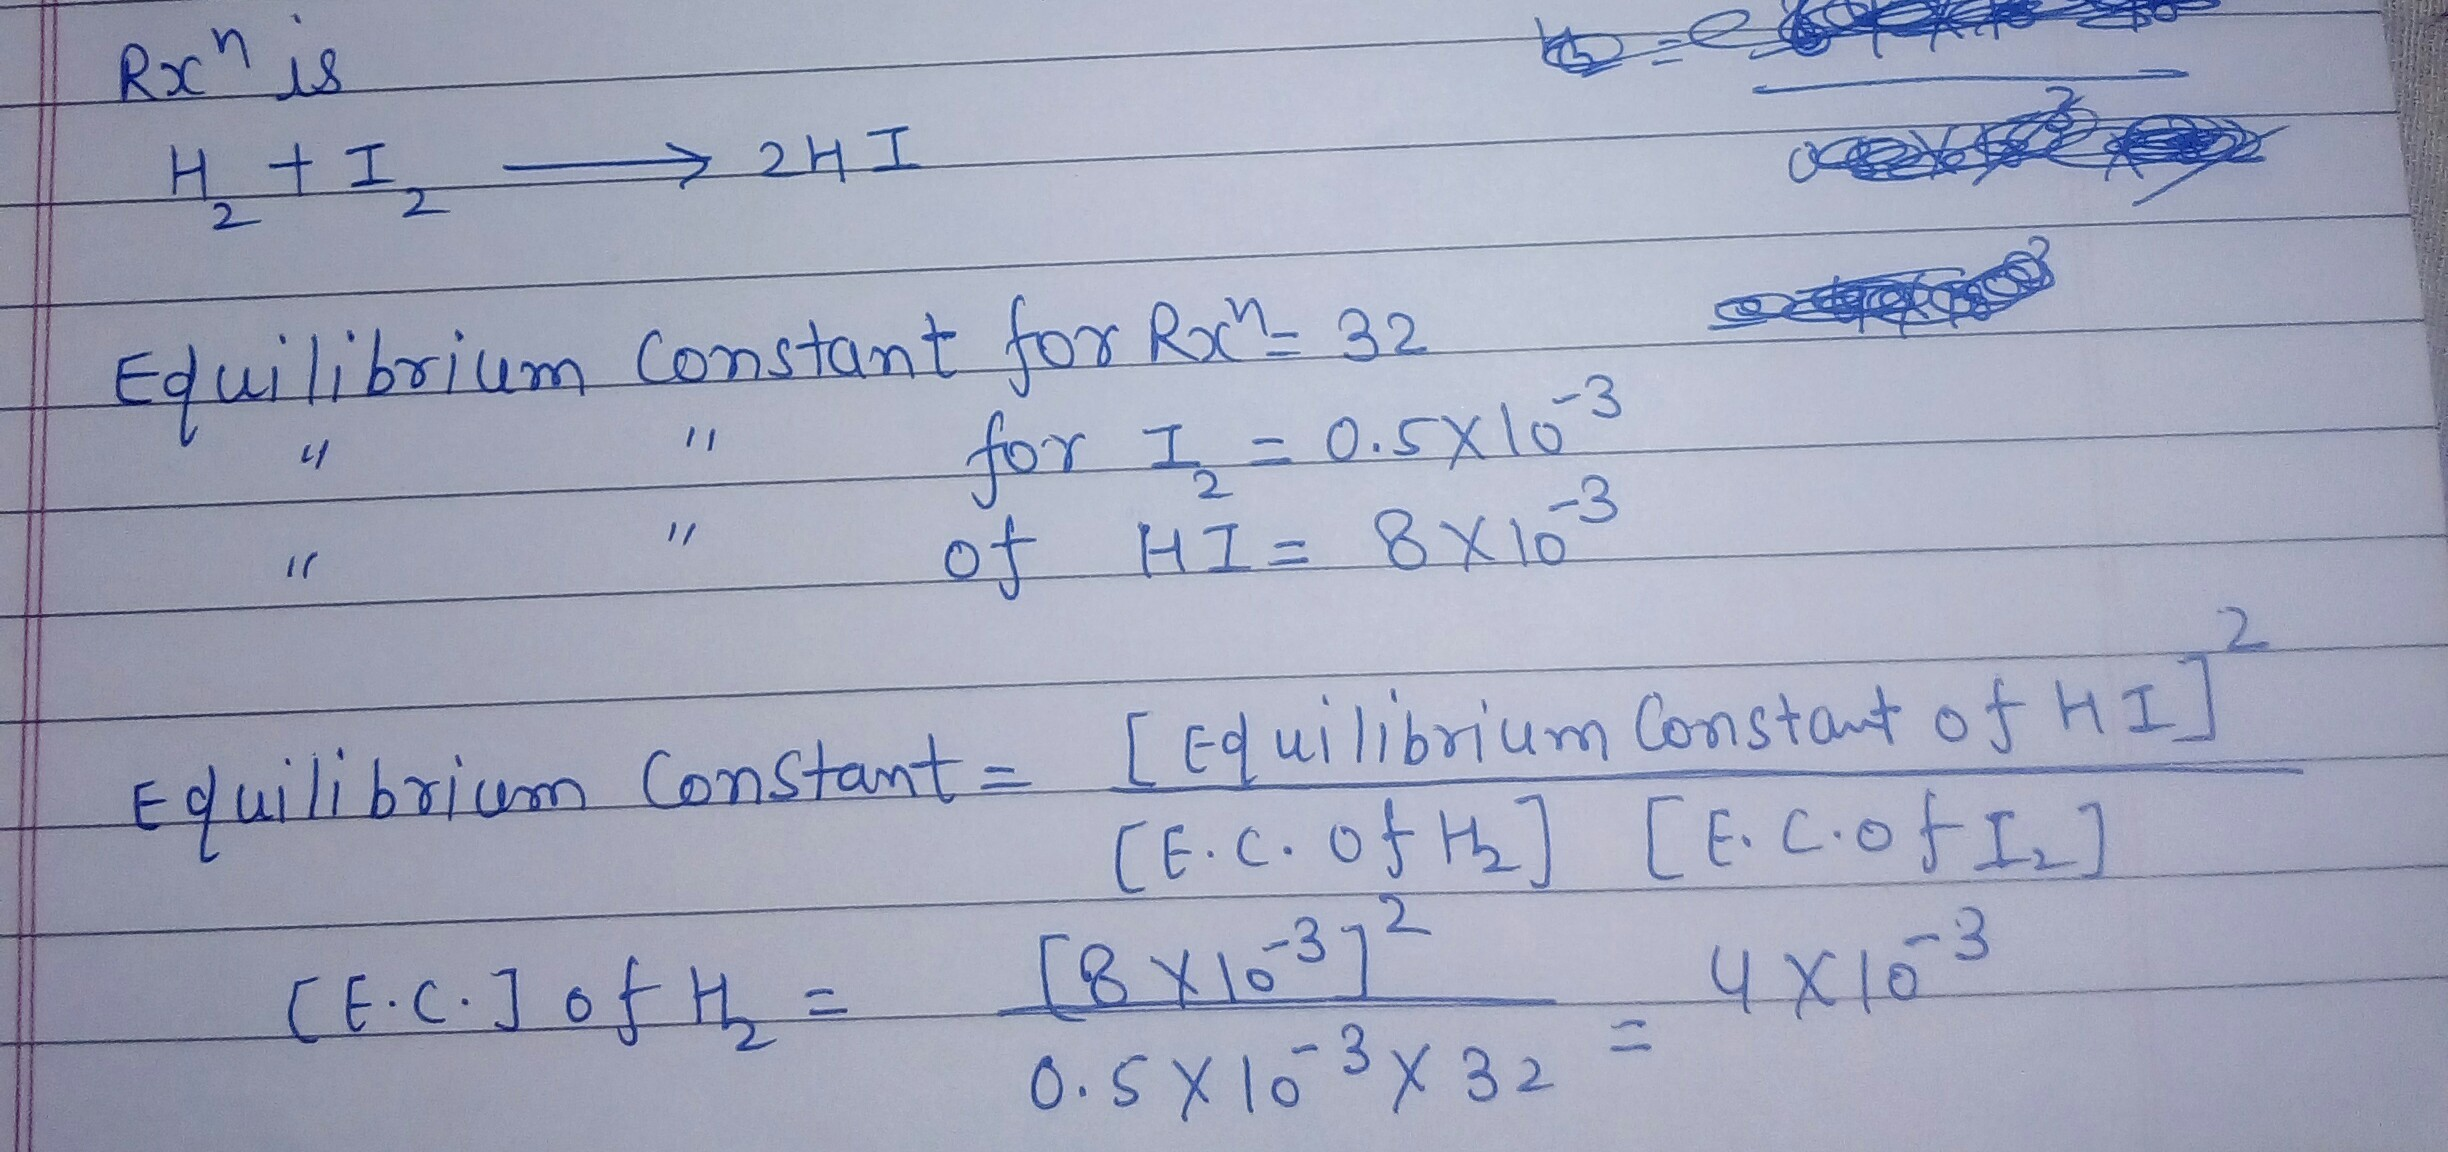 The equilibrium constant for reaction H2 +I2 gives 2HI is 32